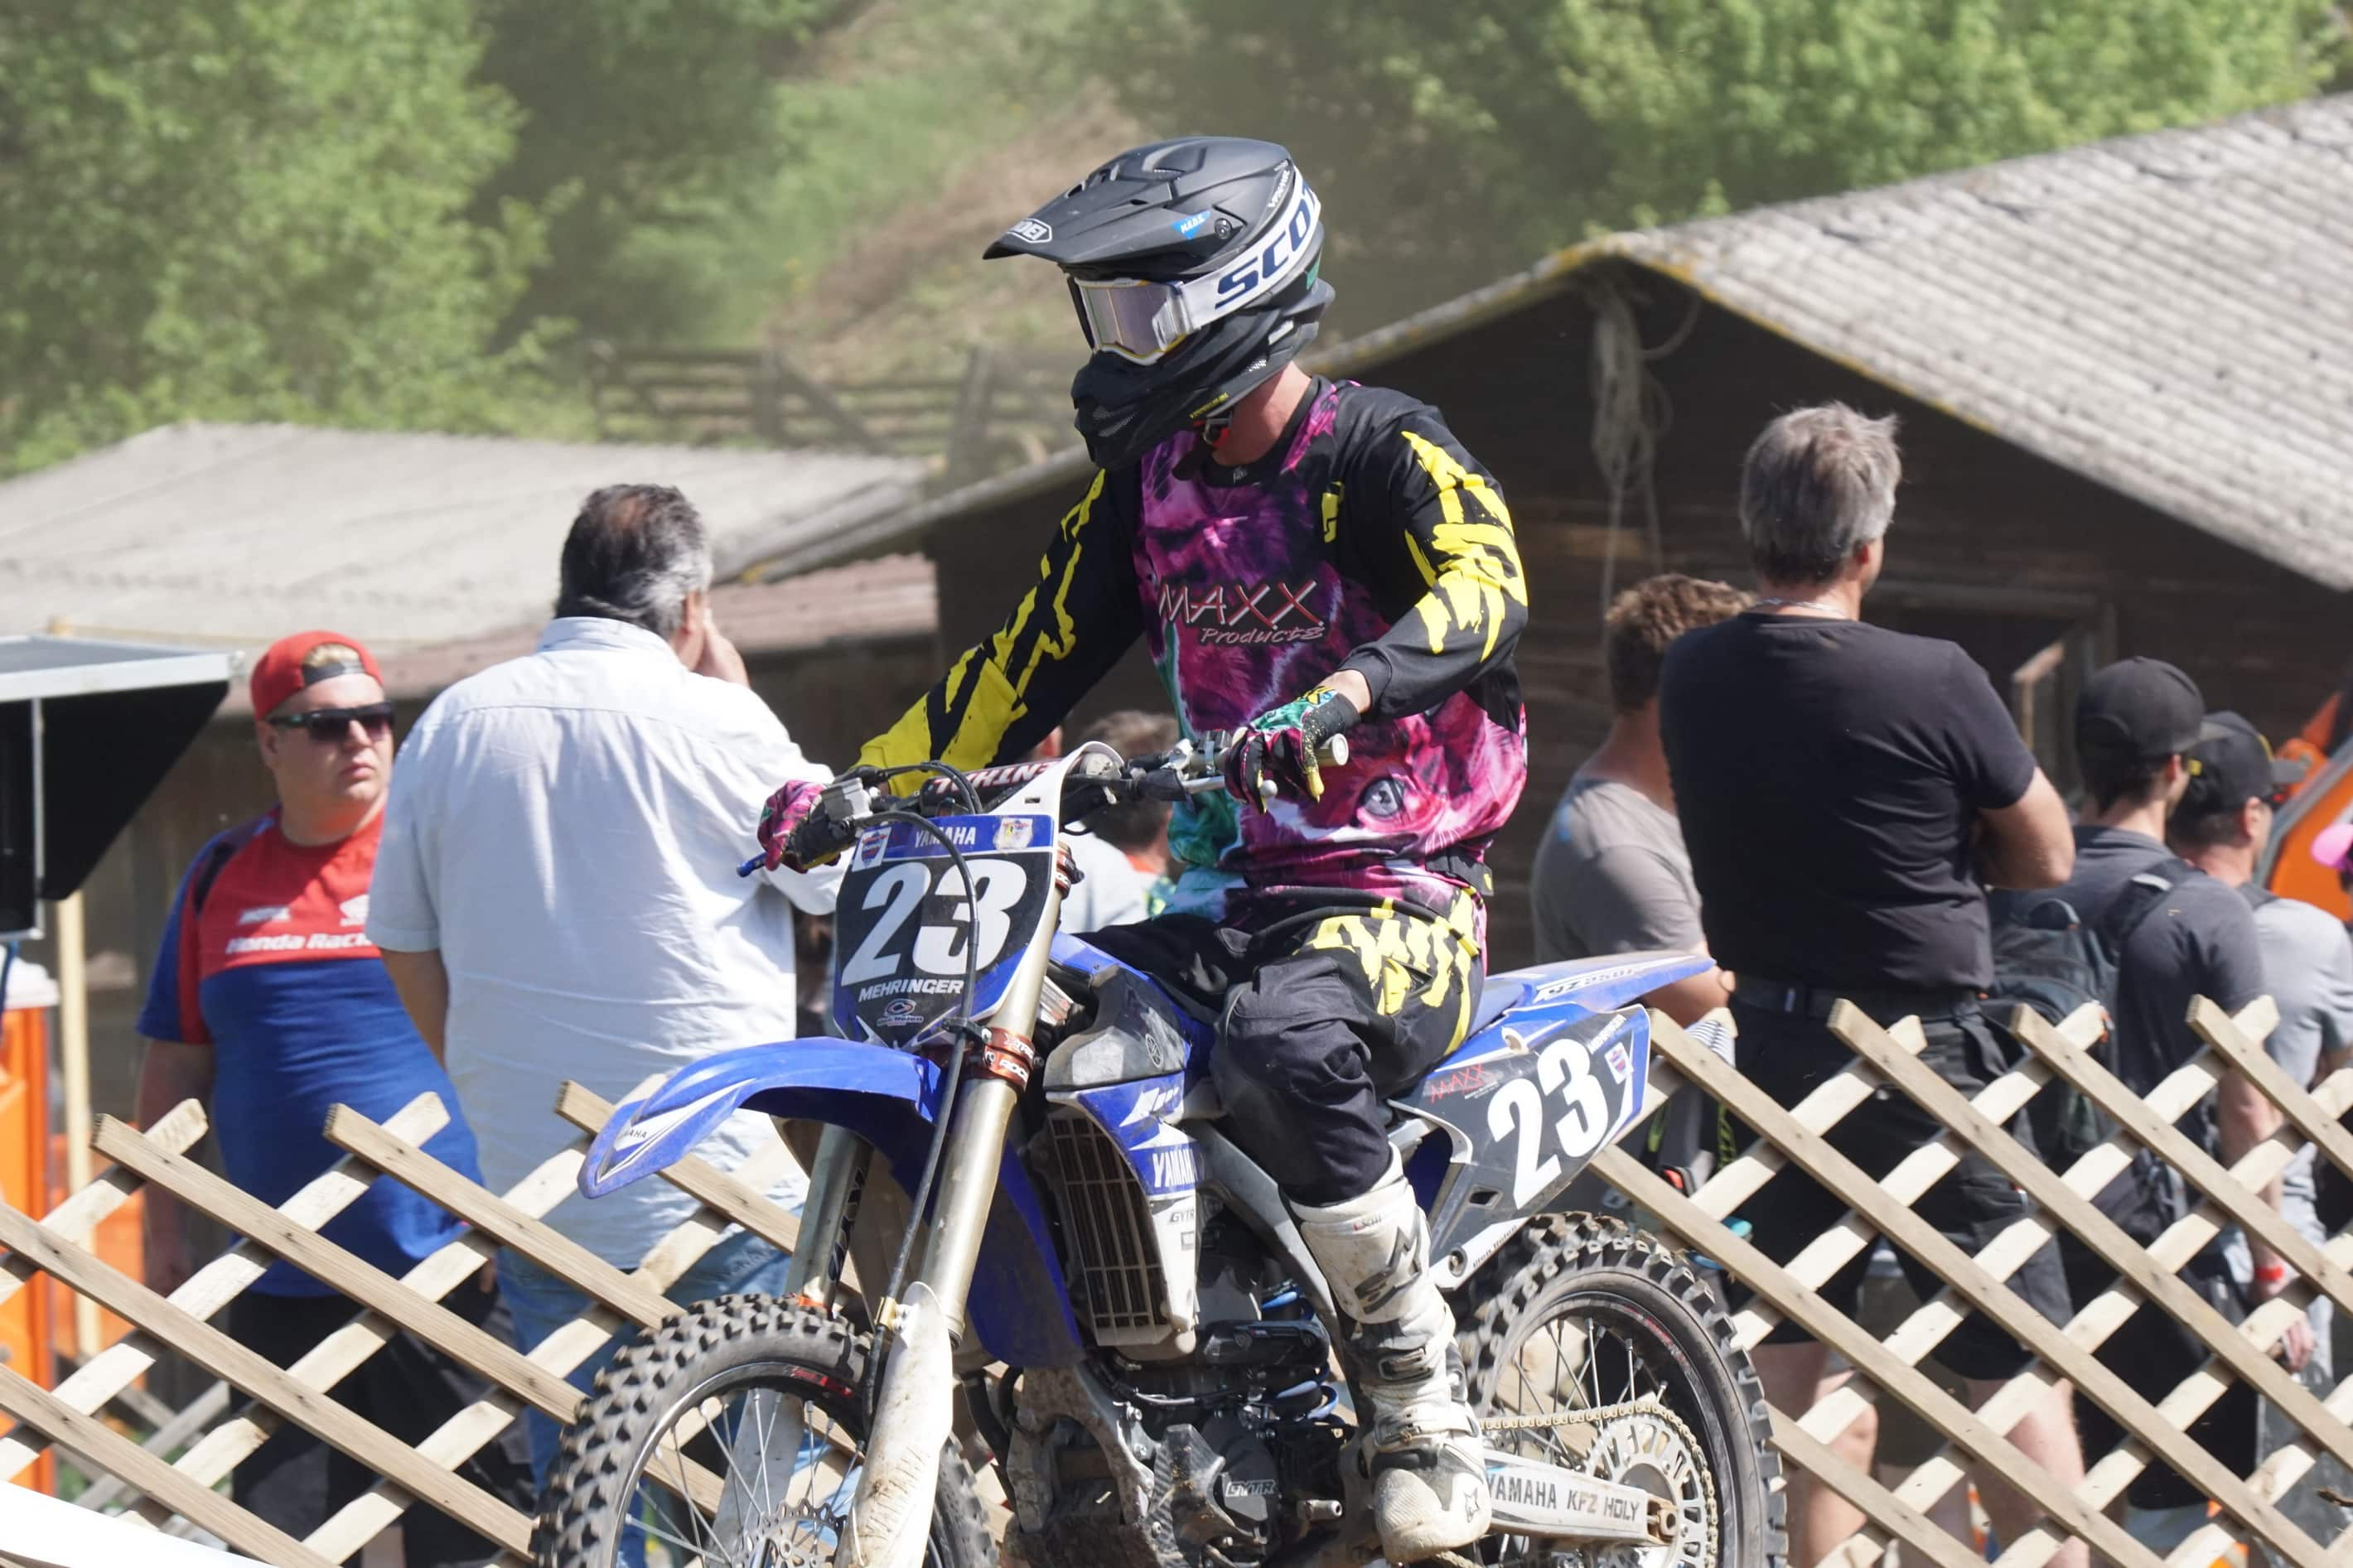 DSC 176_Moto Cross Sittendorf Teil1 am 29.04.2018